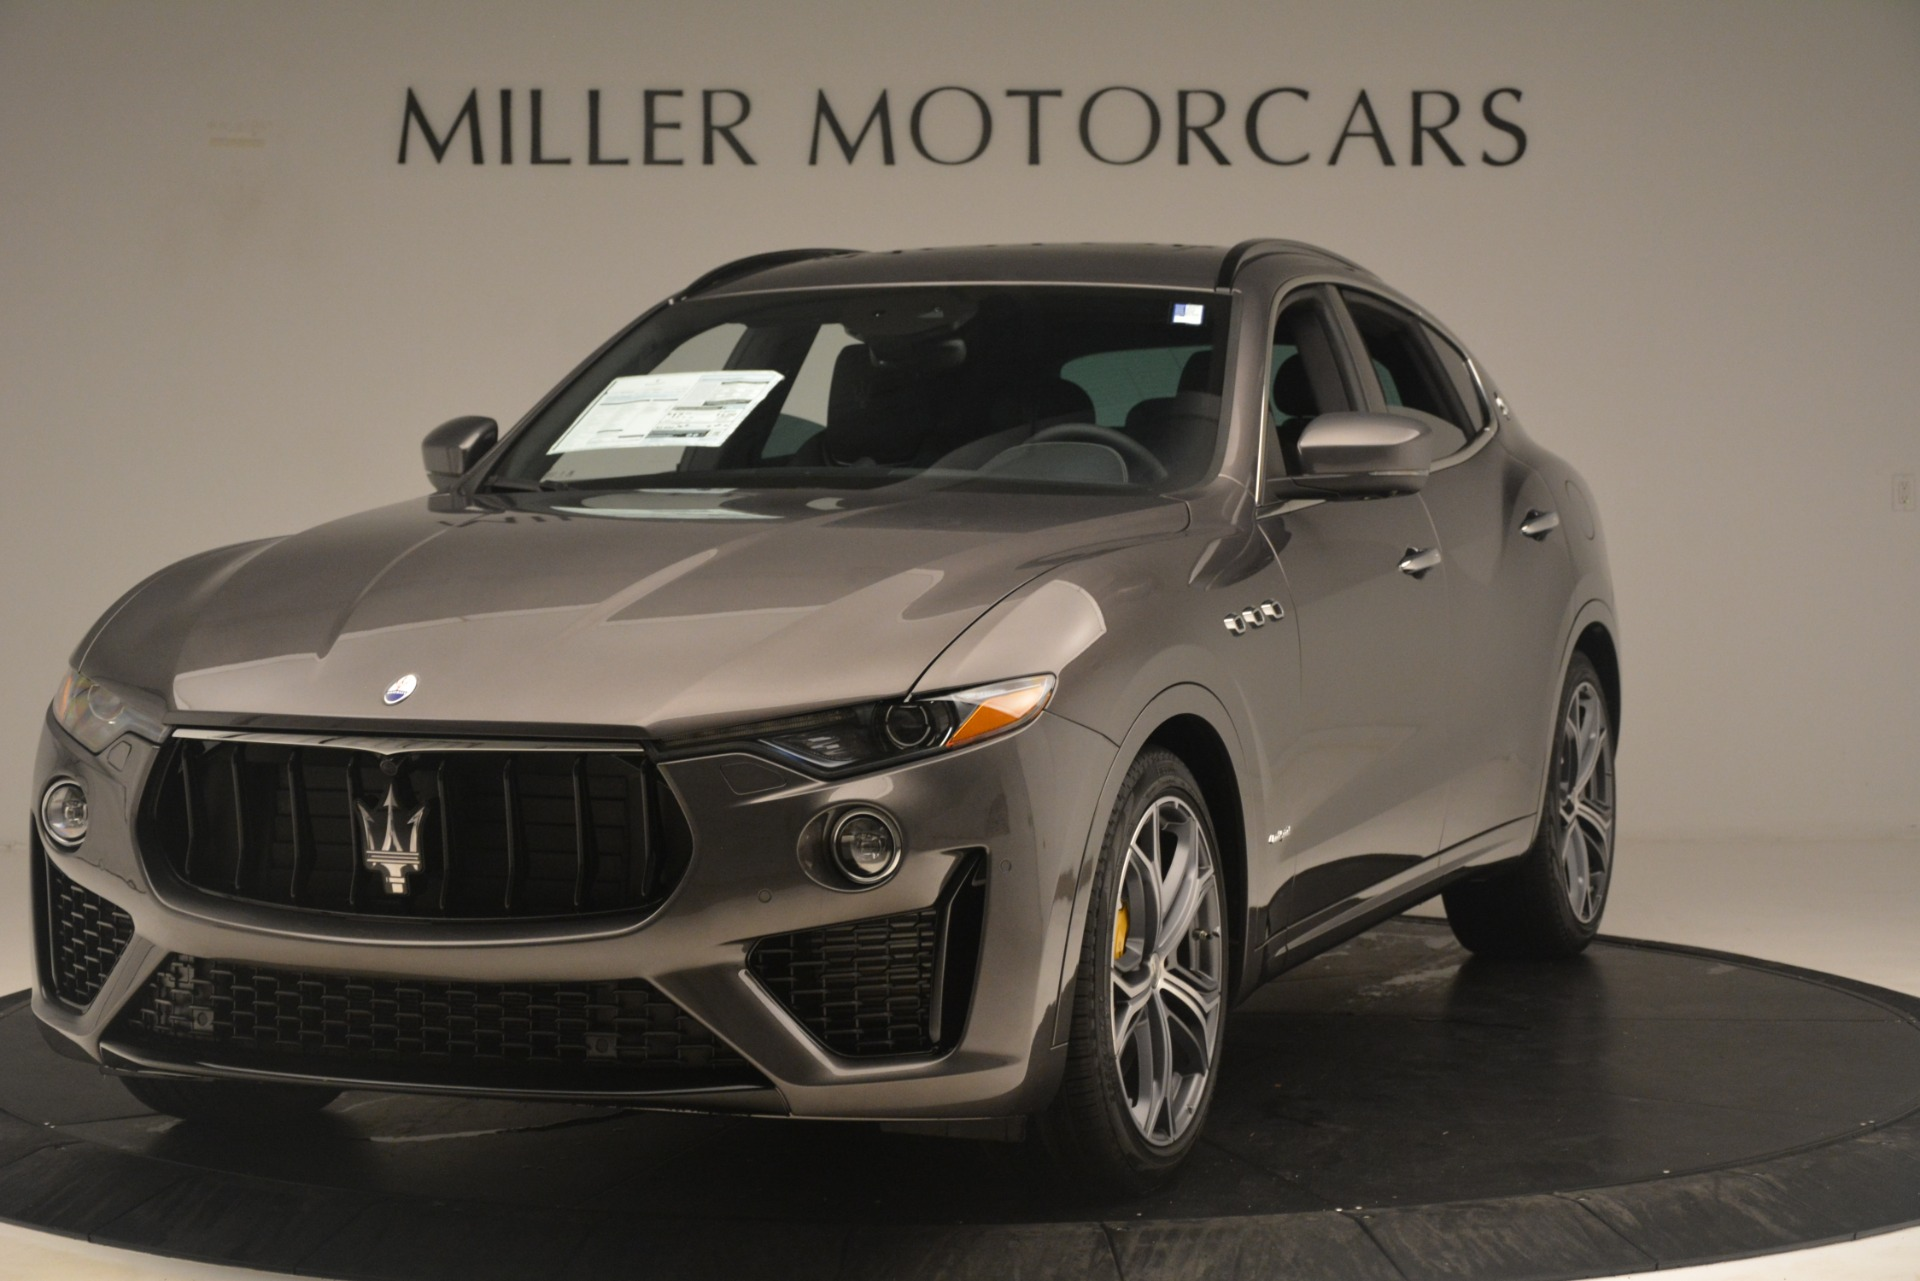 New 2019 Maserati Levante S Q4 GranSport for sale $104,840 at Pagani of Greenwich in Greenwich CT 06830 1